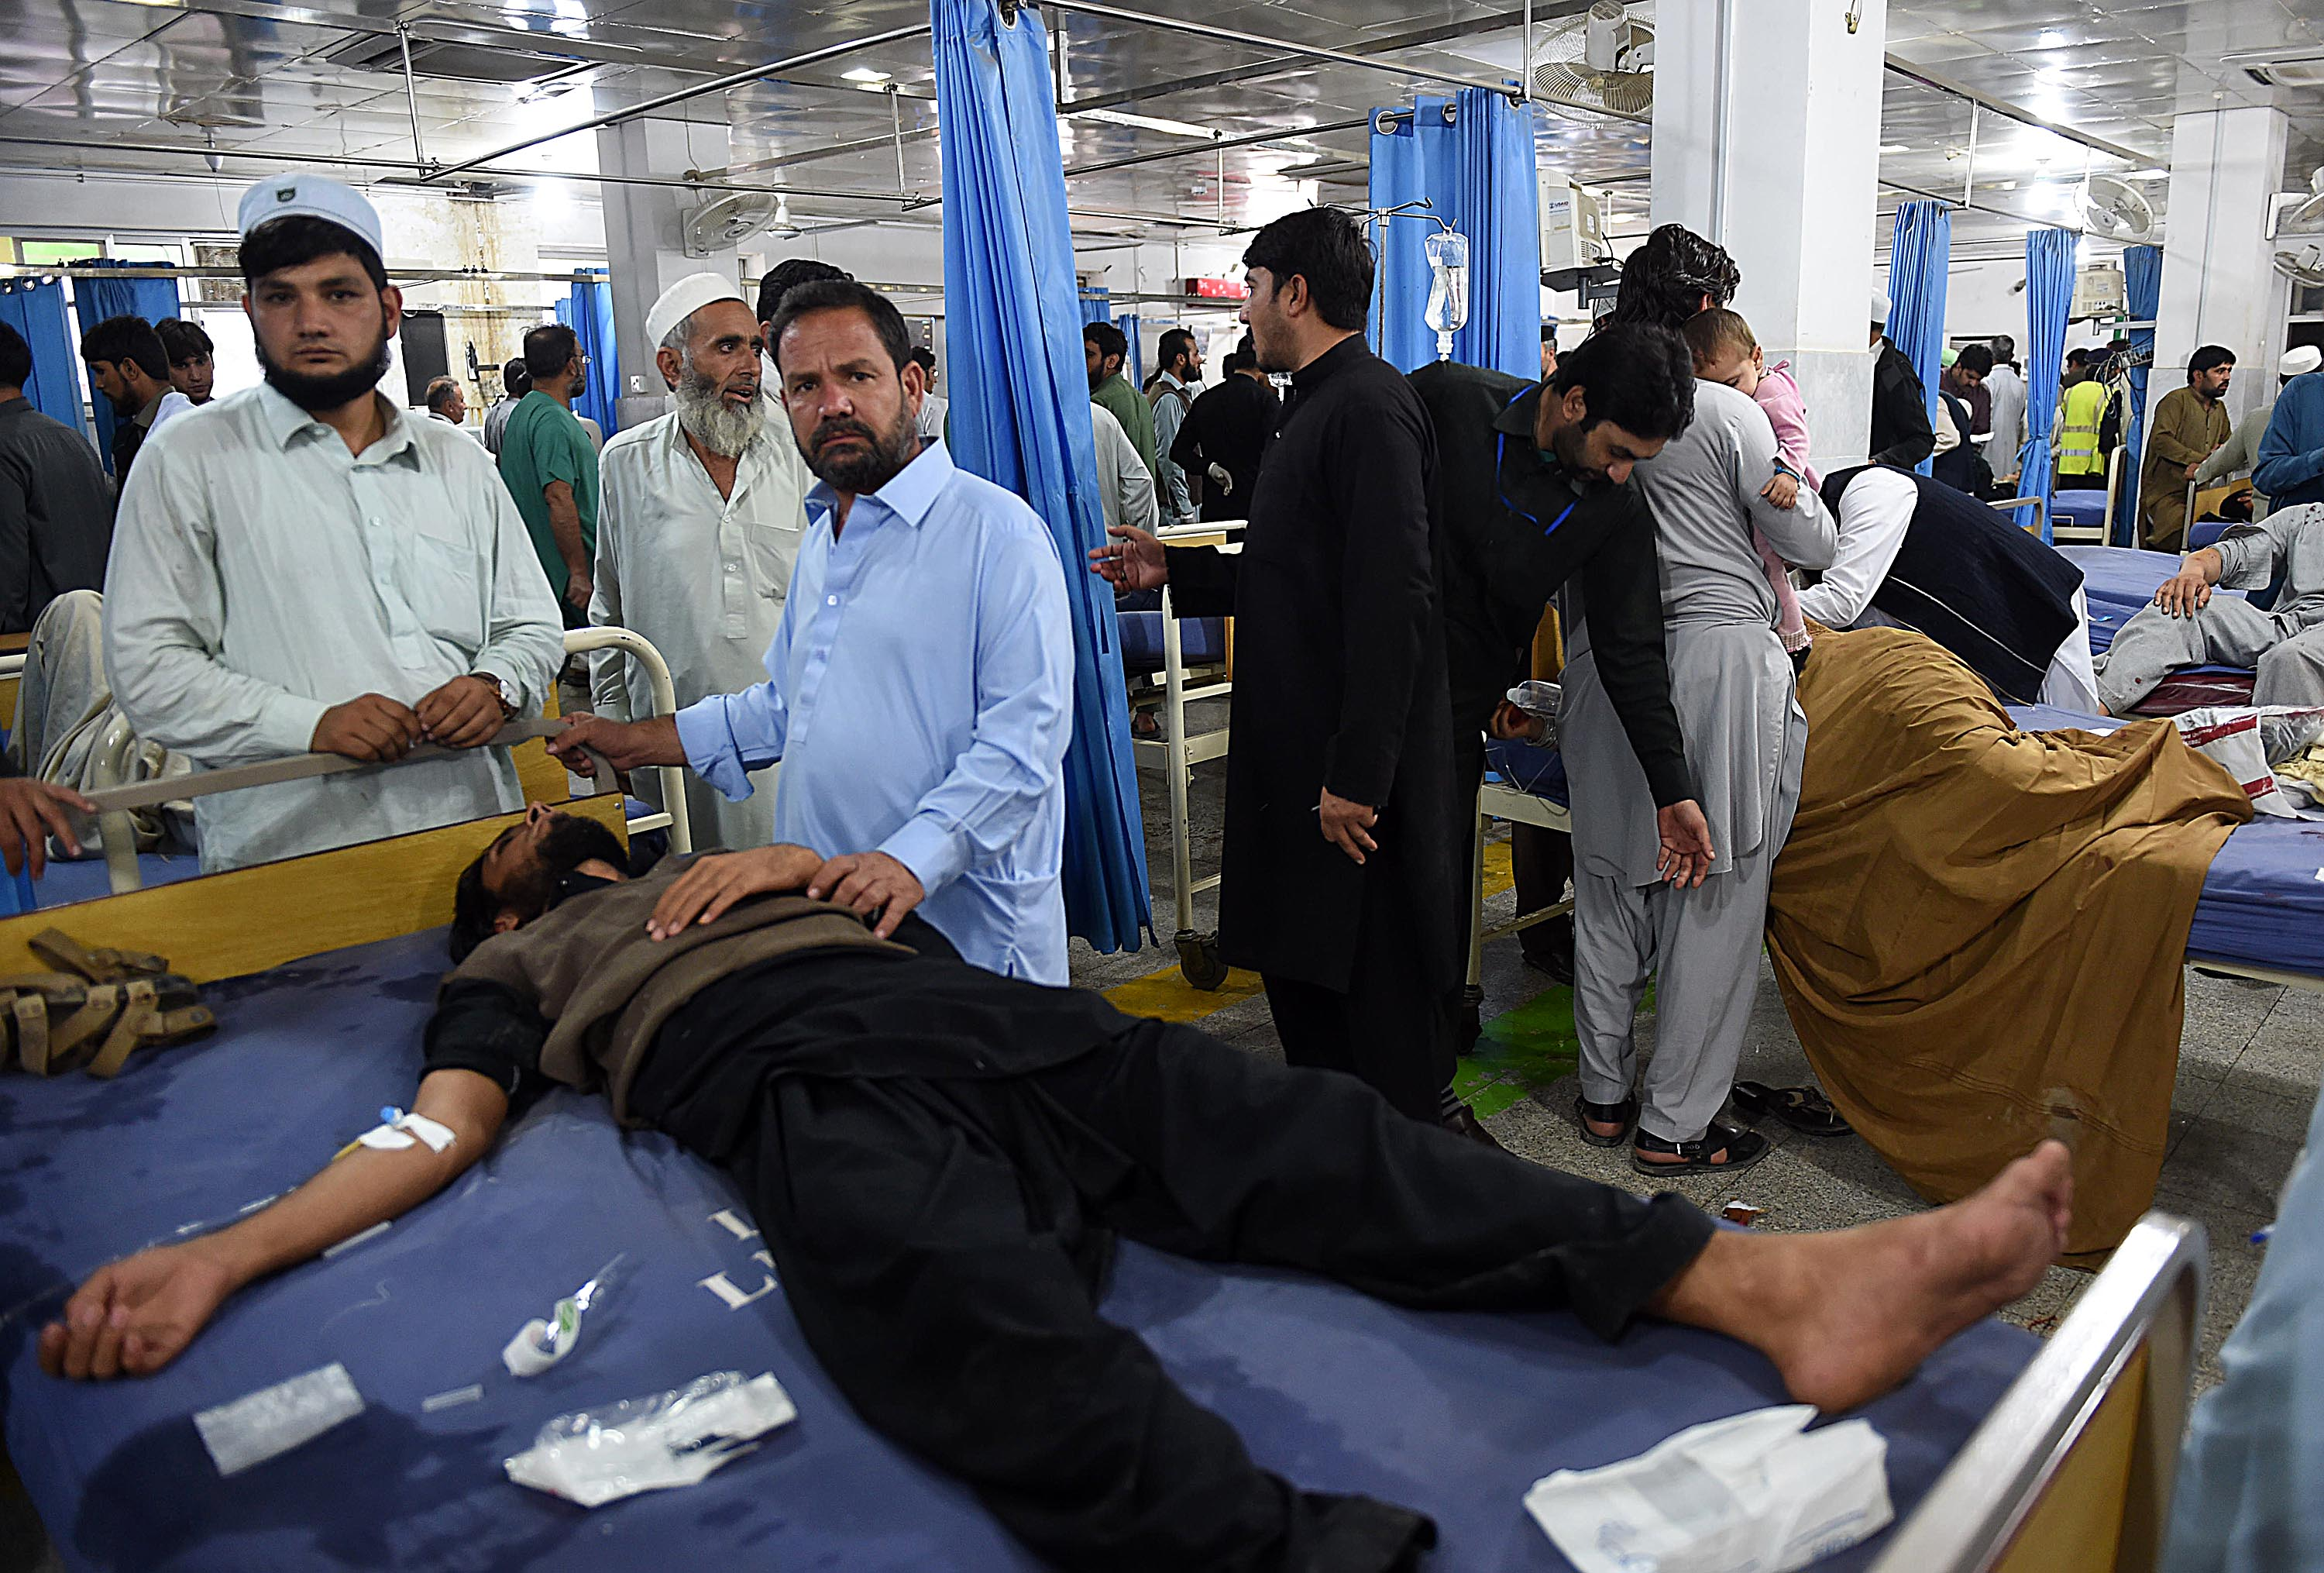 Earthquake victims at a hospital in Peshawar, Pakistan